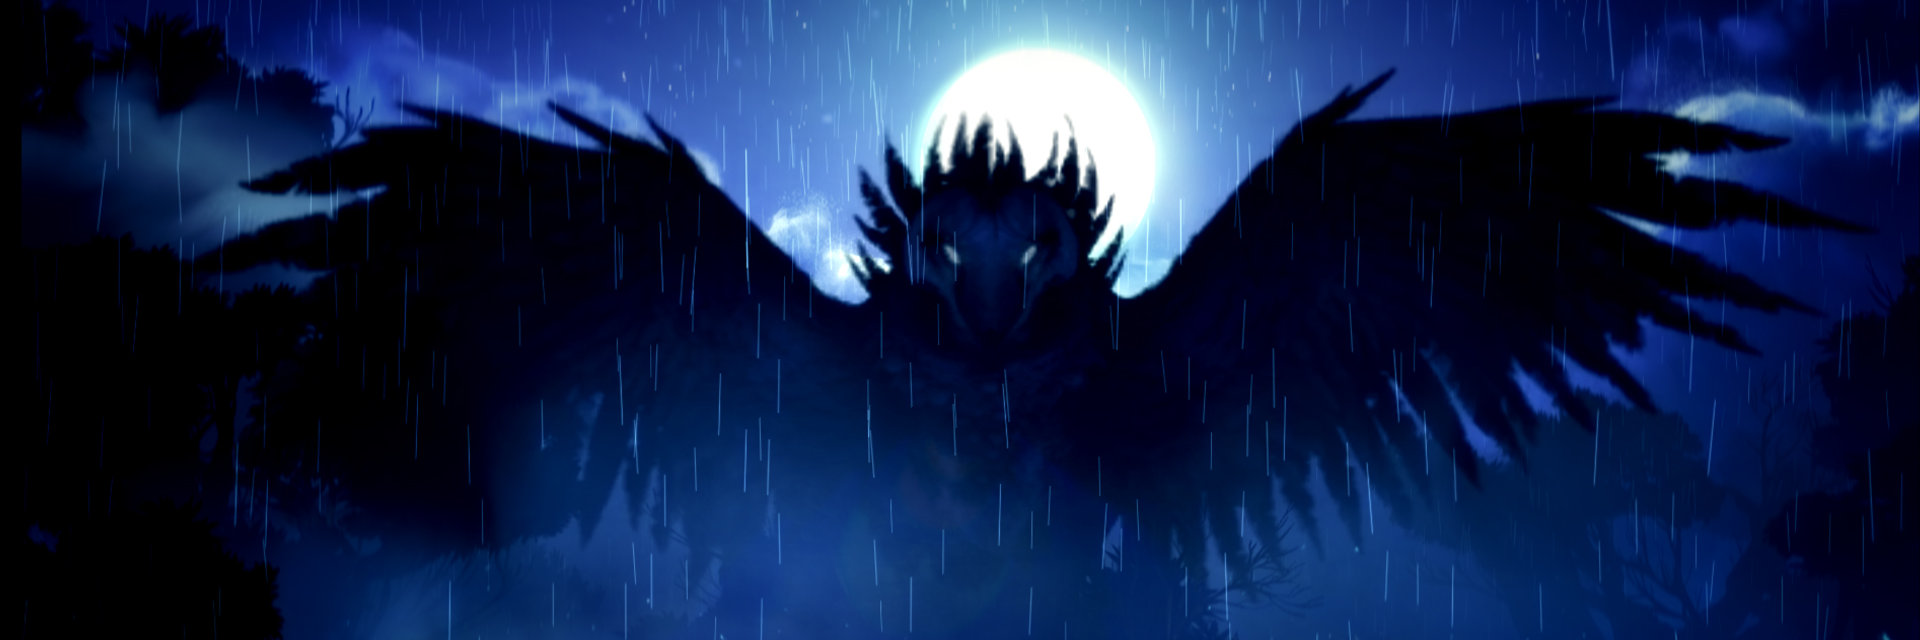 An image of Kuro the owl, vast and nightmarish, wings outstretched.